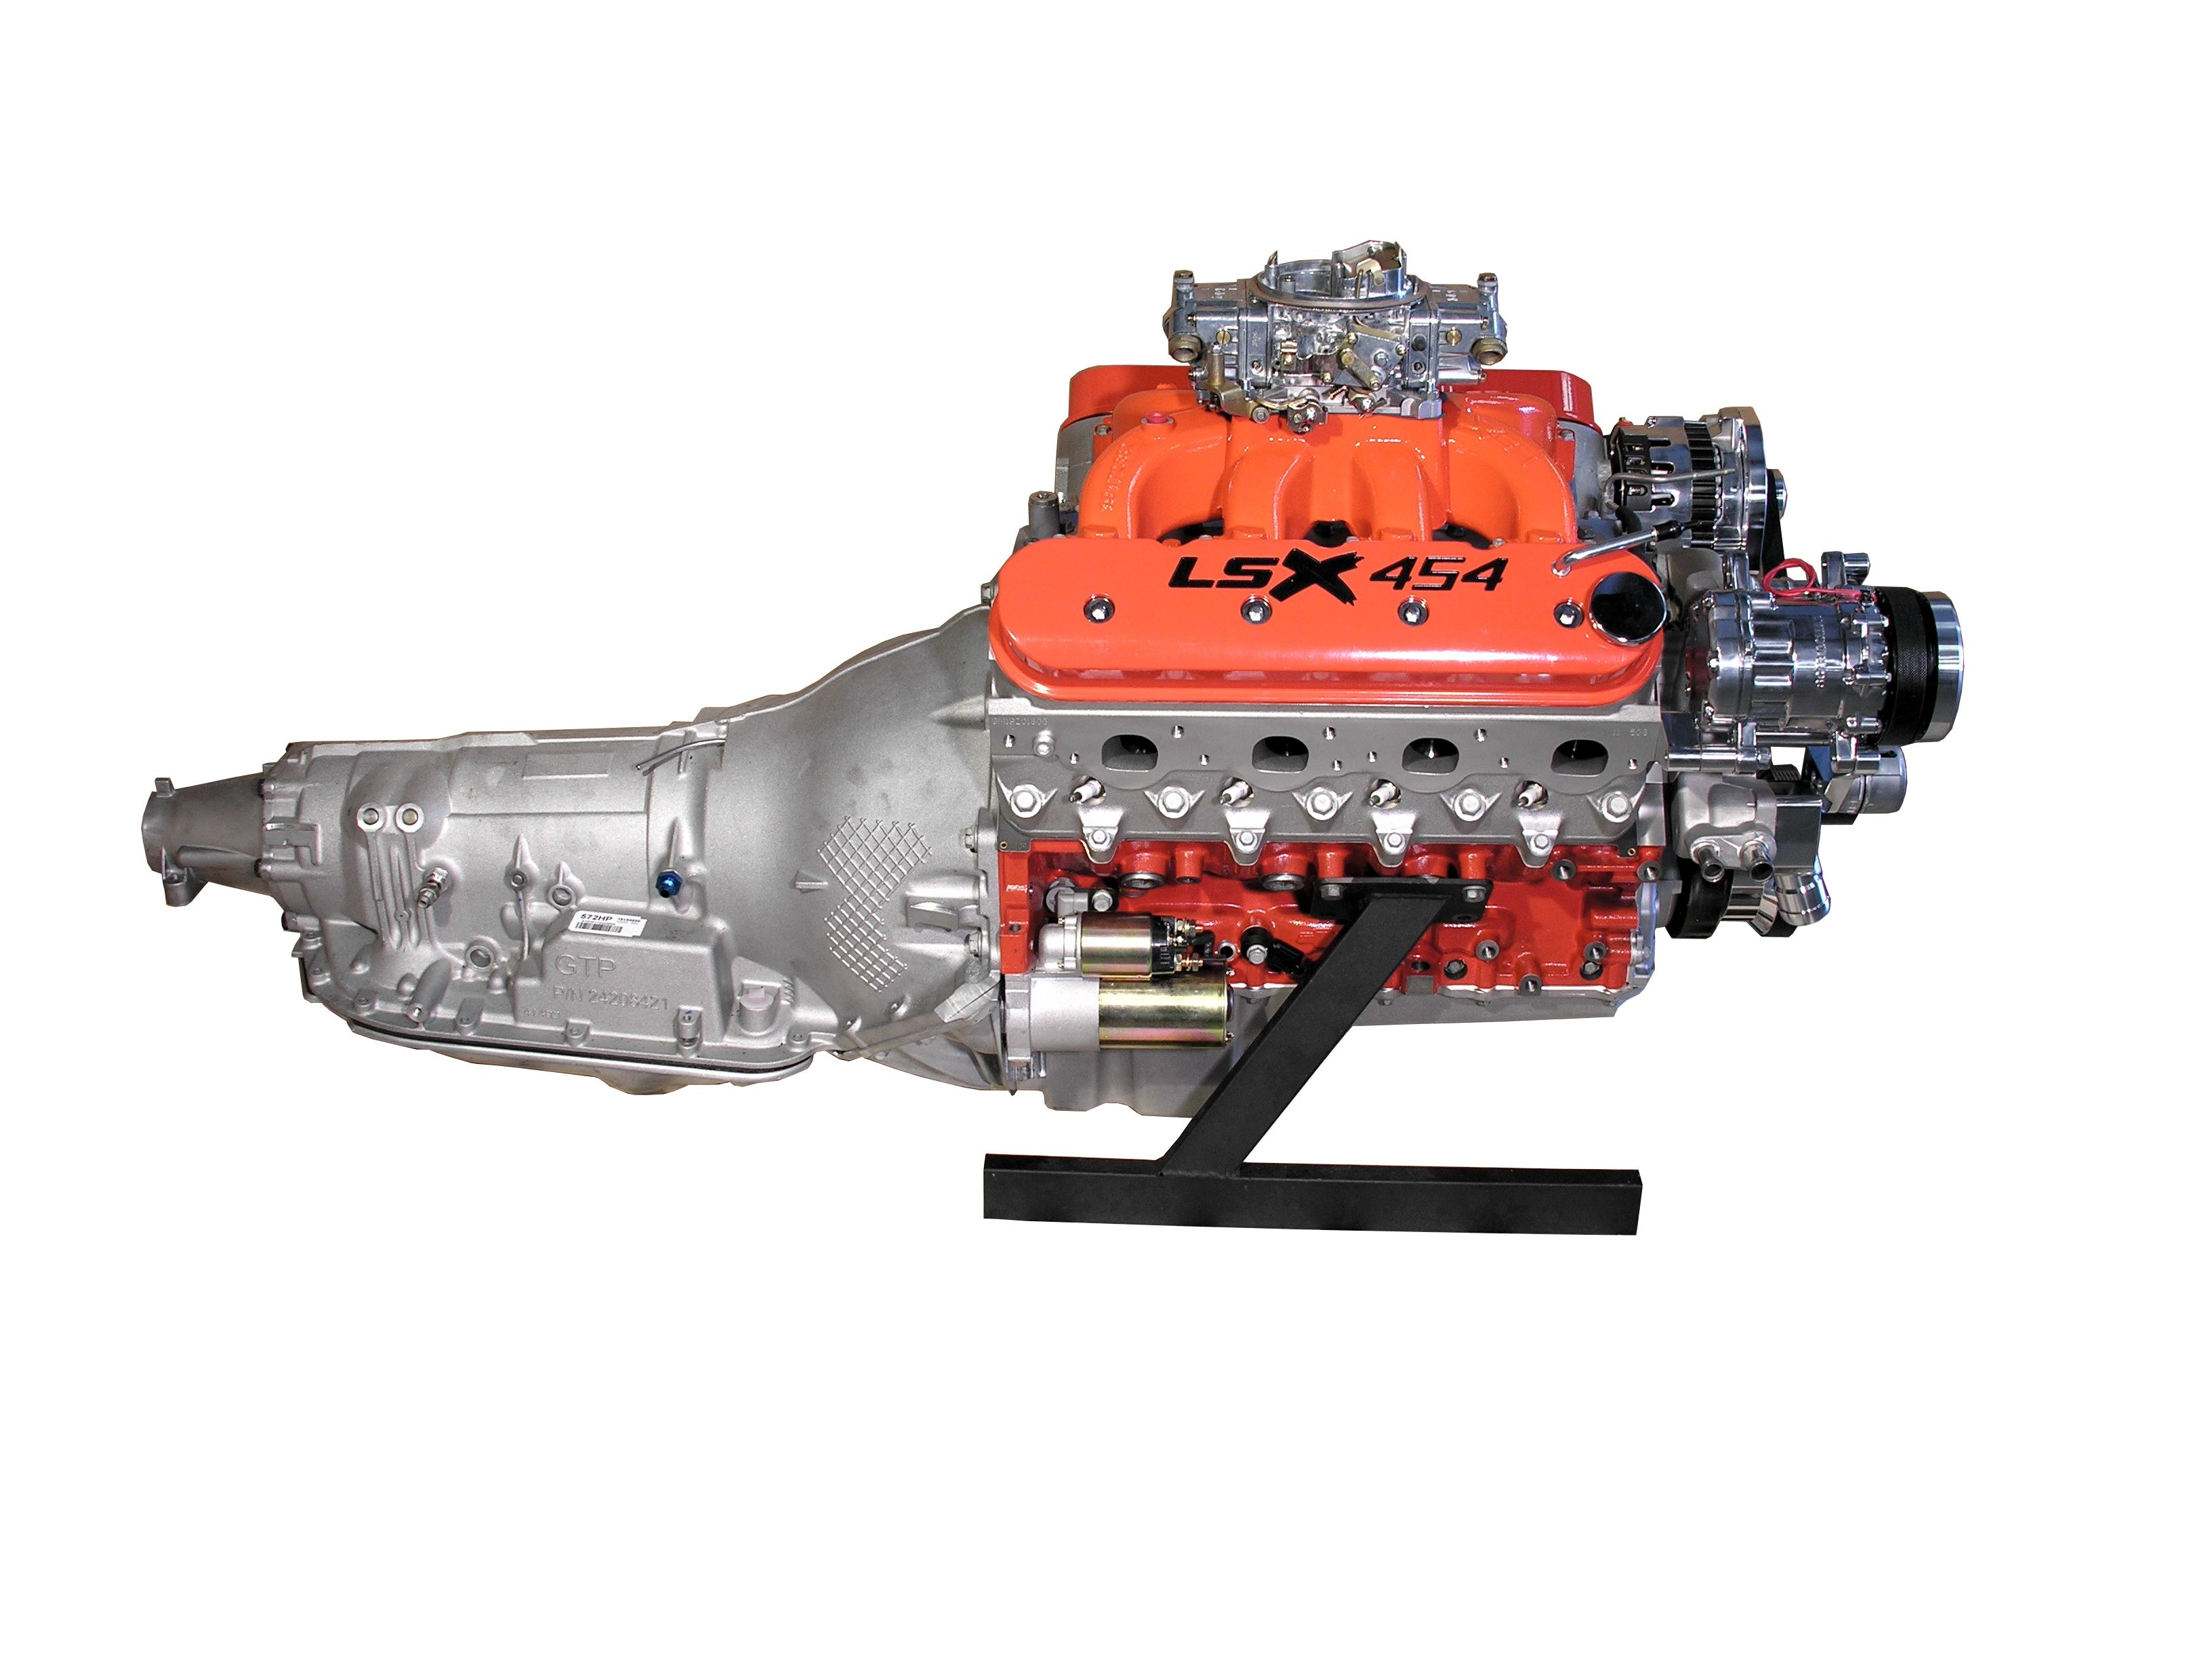 lsx 454 engine with holley carb and 4l85e transmission 650 hp custom lsx. Black Bedroom Furniture Sets. Home Design Ideas